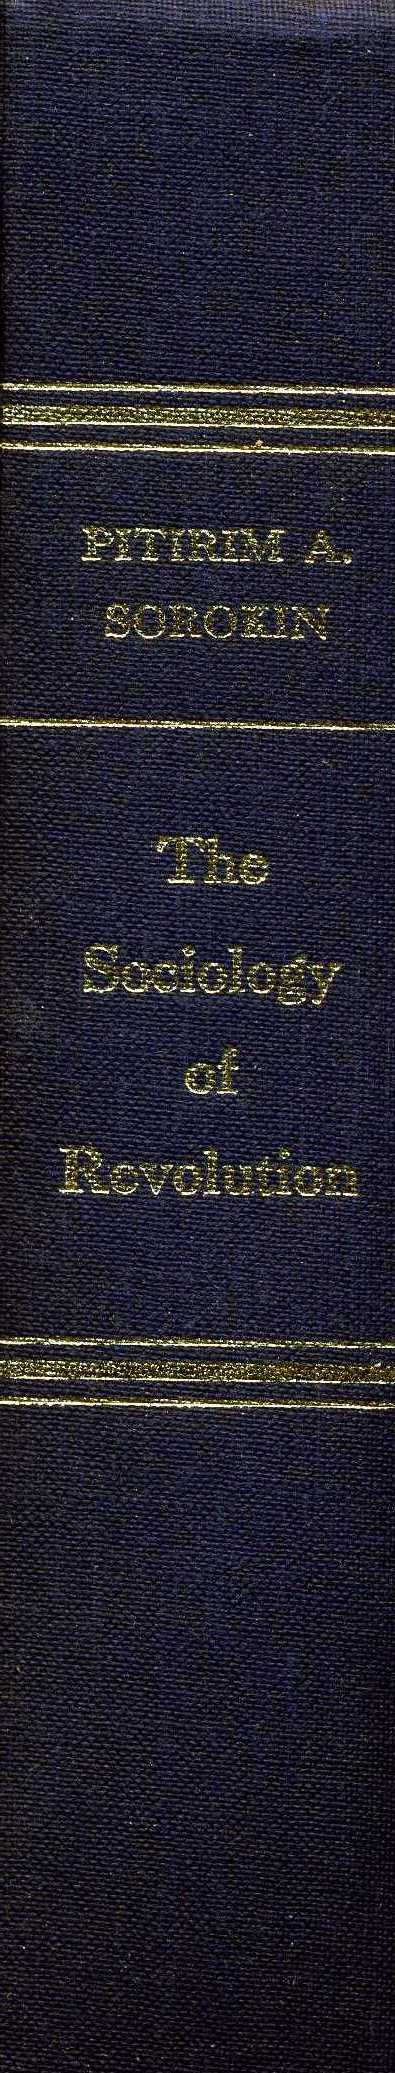 Sociology of Revolution.jpg